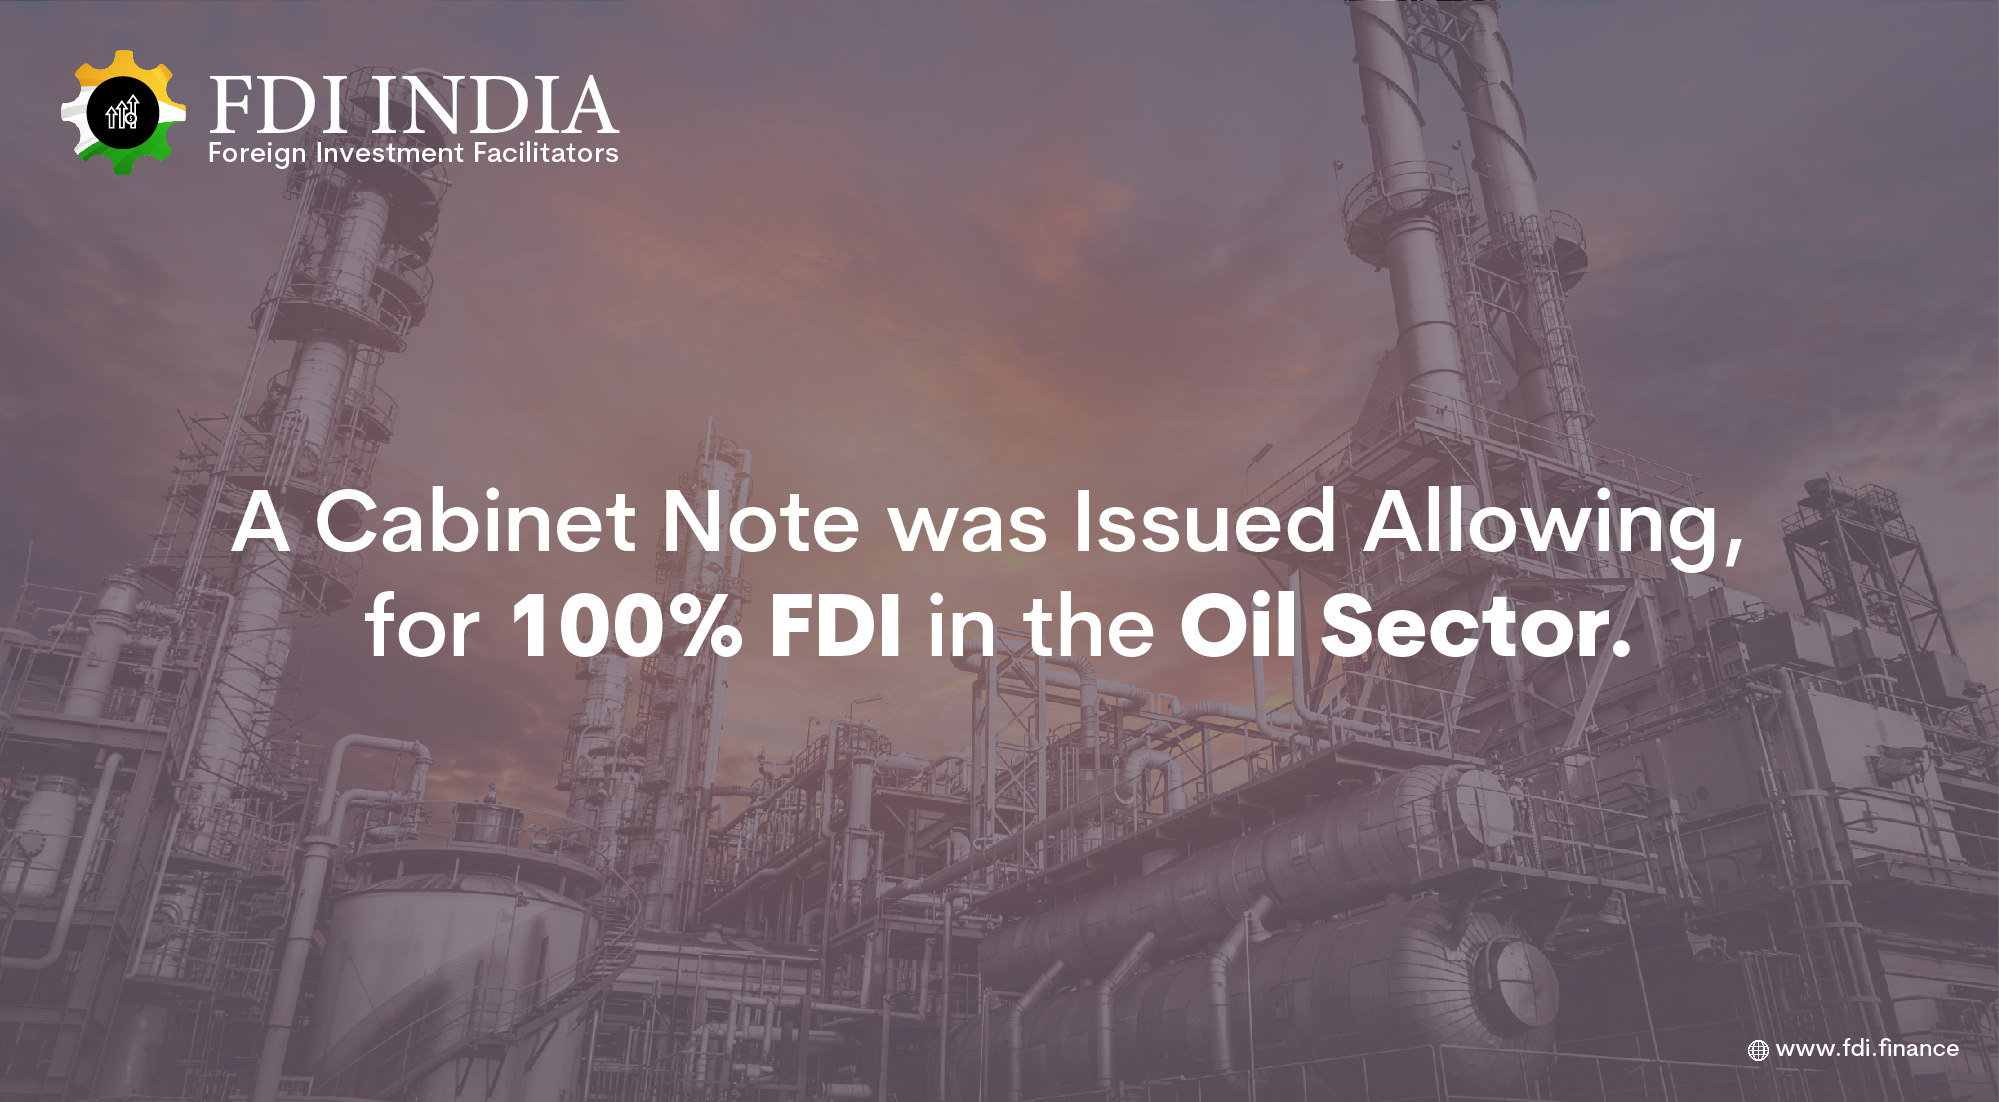 A Cabinet Note was Issued Allowing, for 100% FDI in the Oil Sector